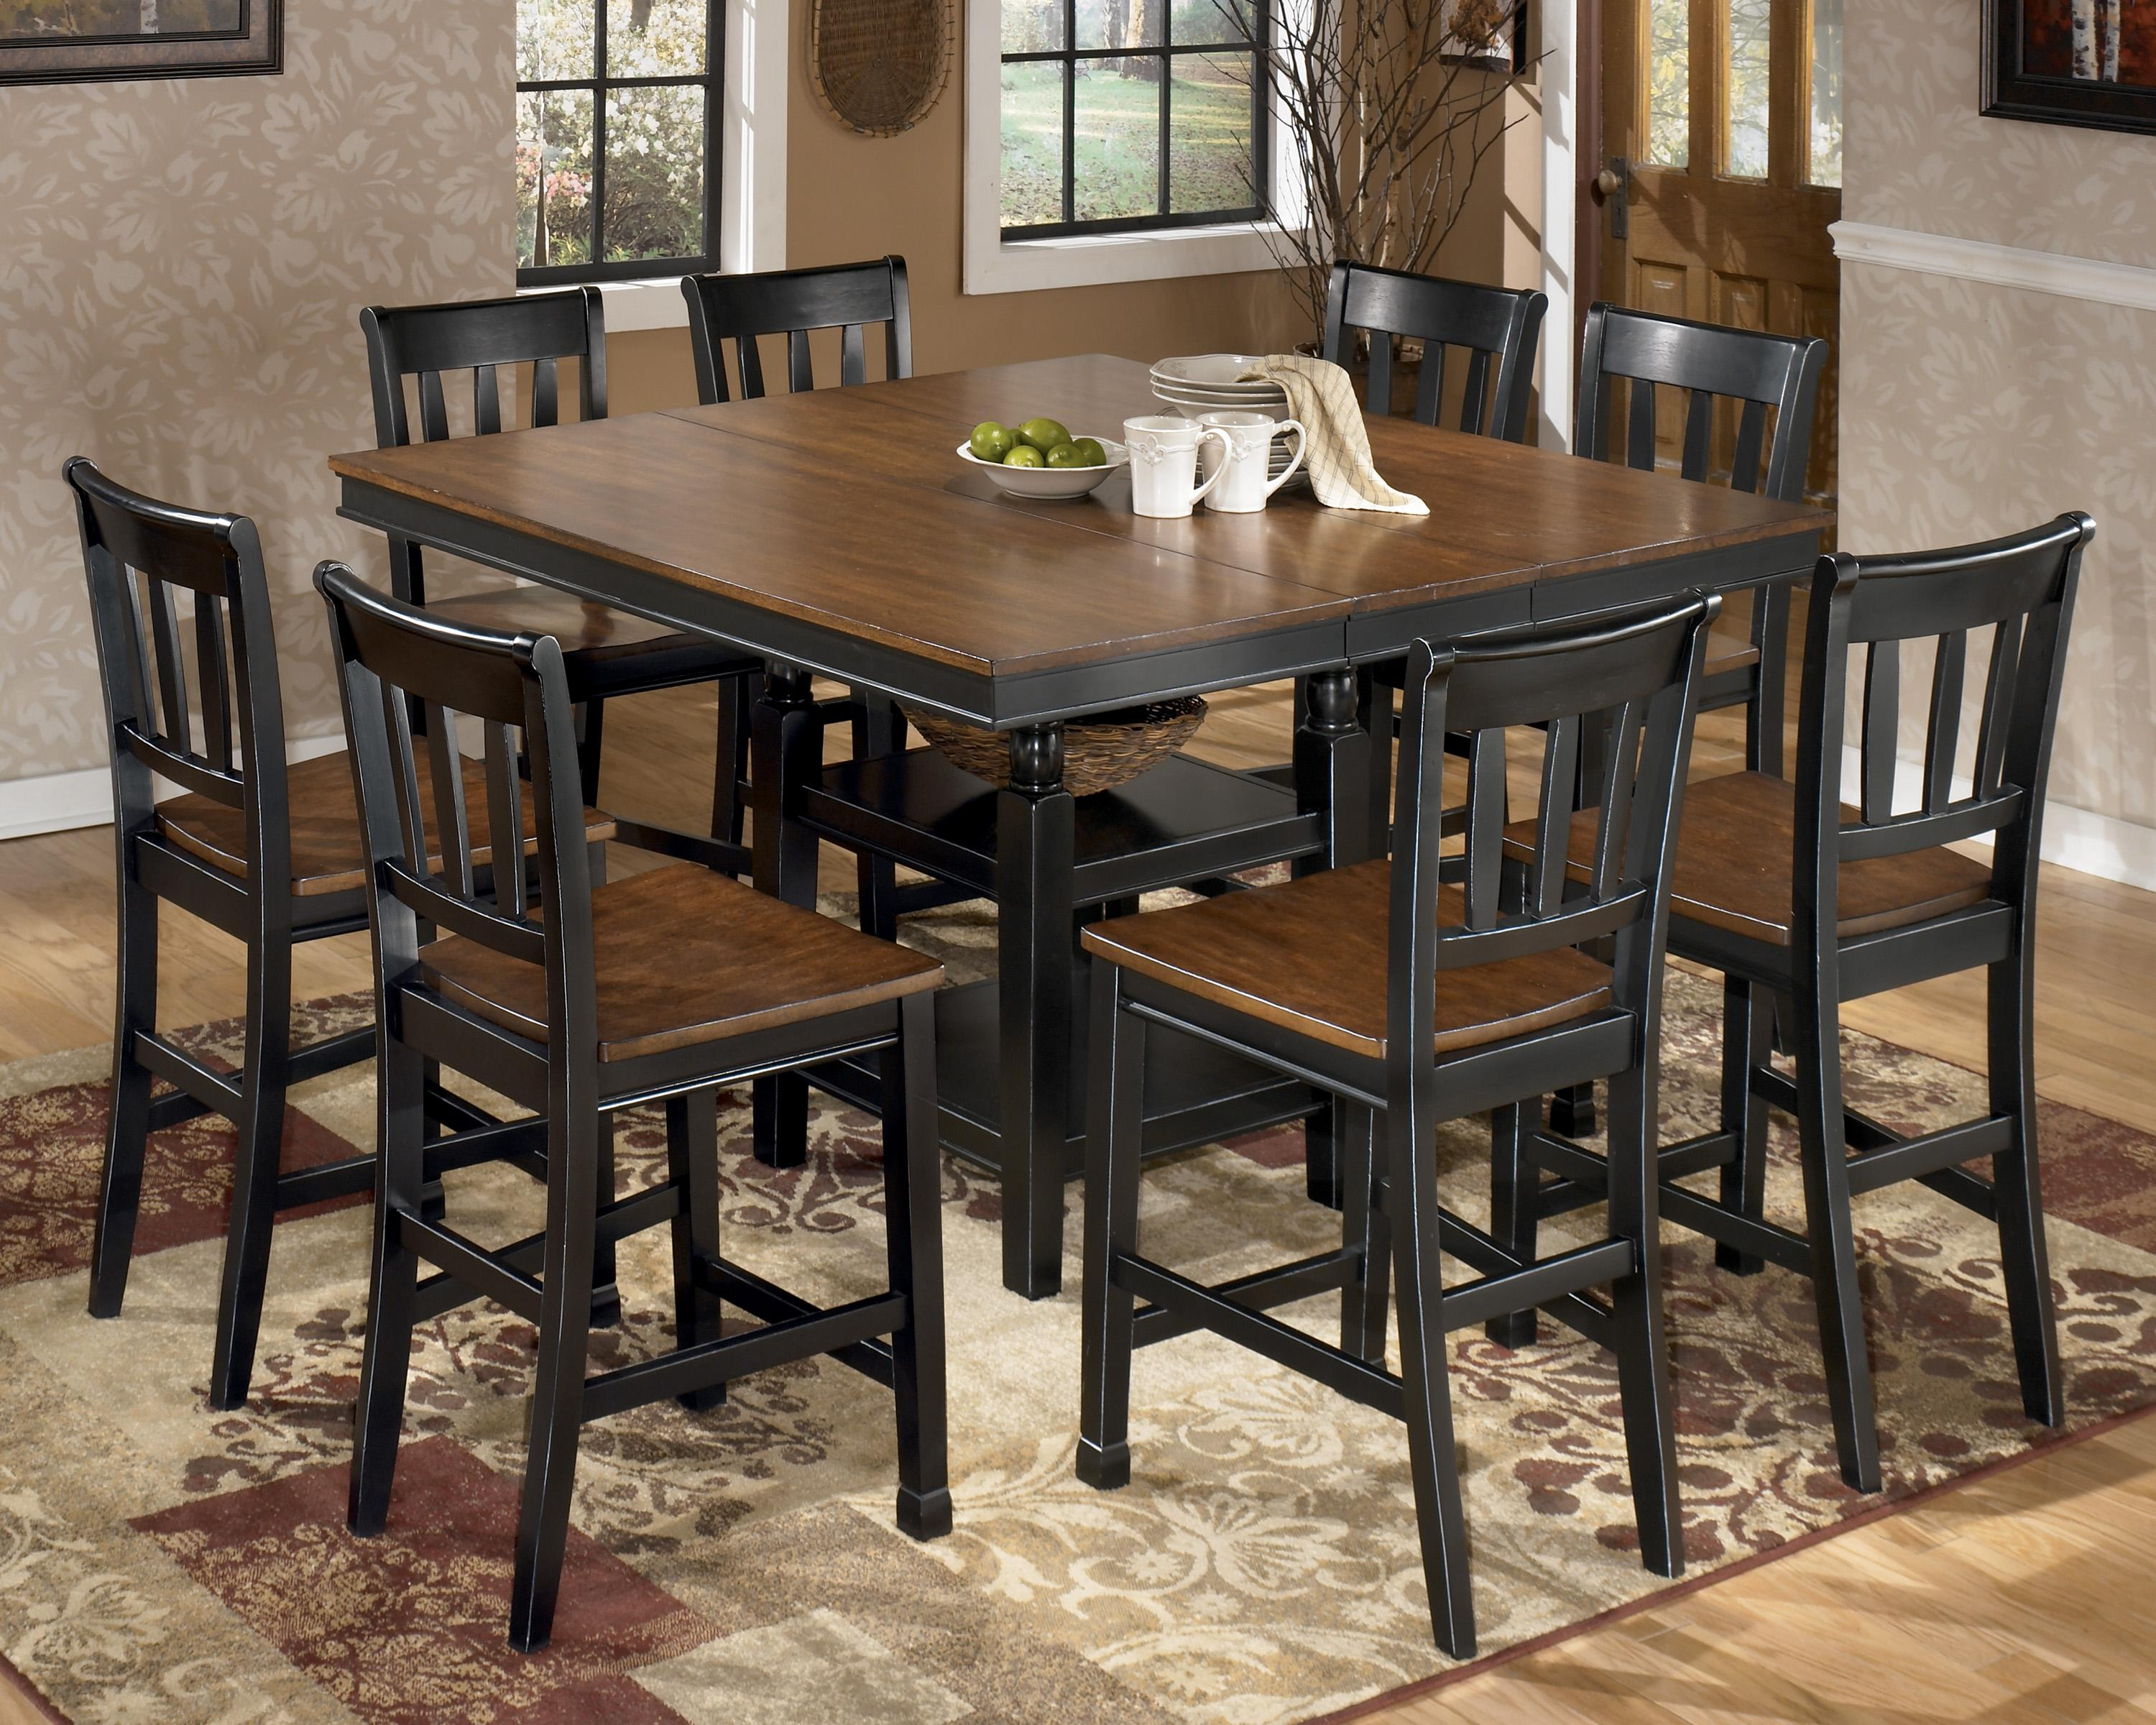 Signature Design by Ashley Owingsville 9-Piece Square Counter Extension Table Set - Item Number: D580-32+8x224